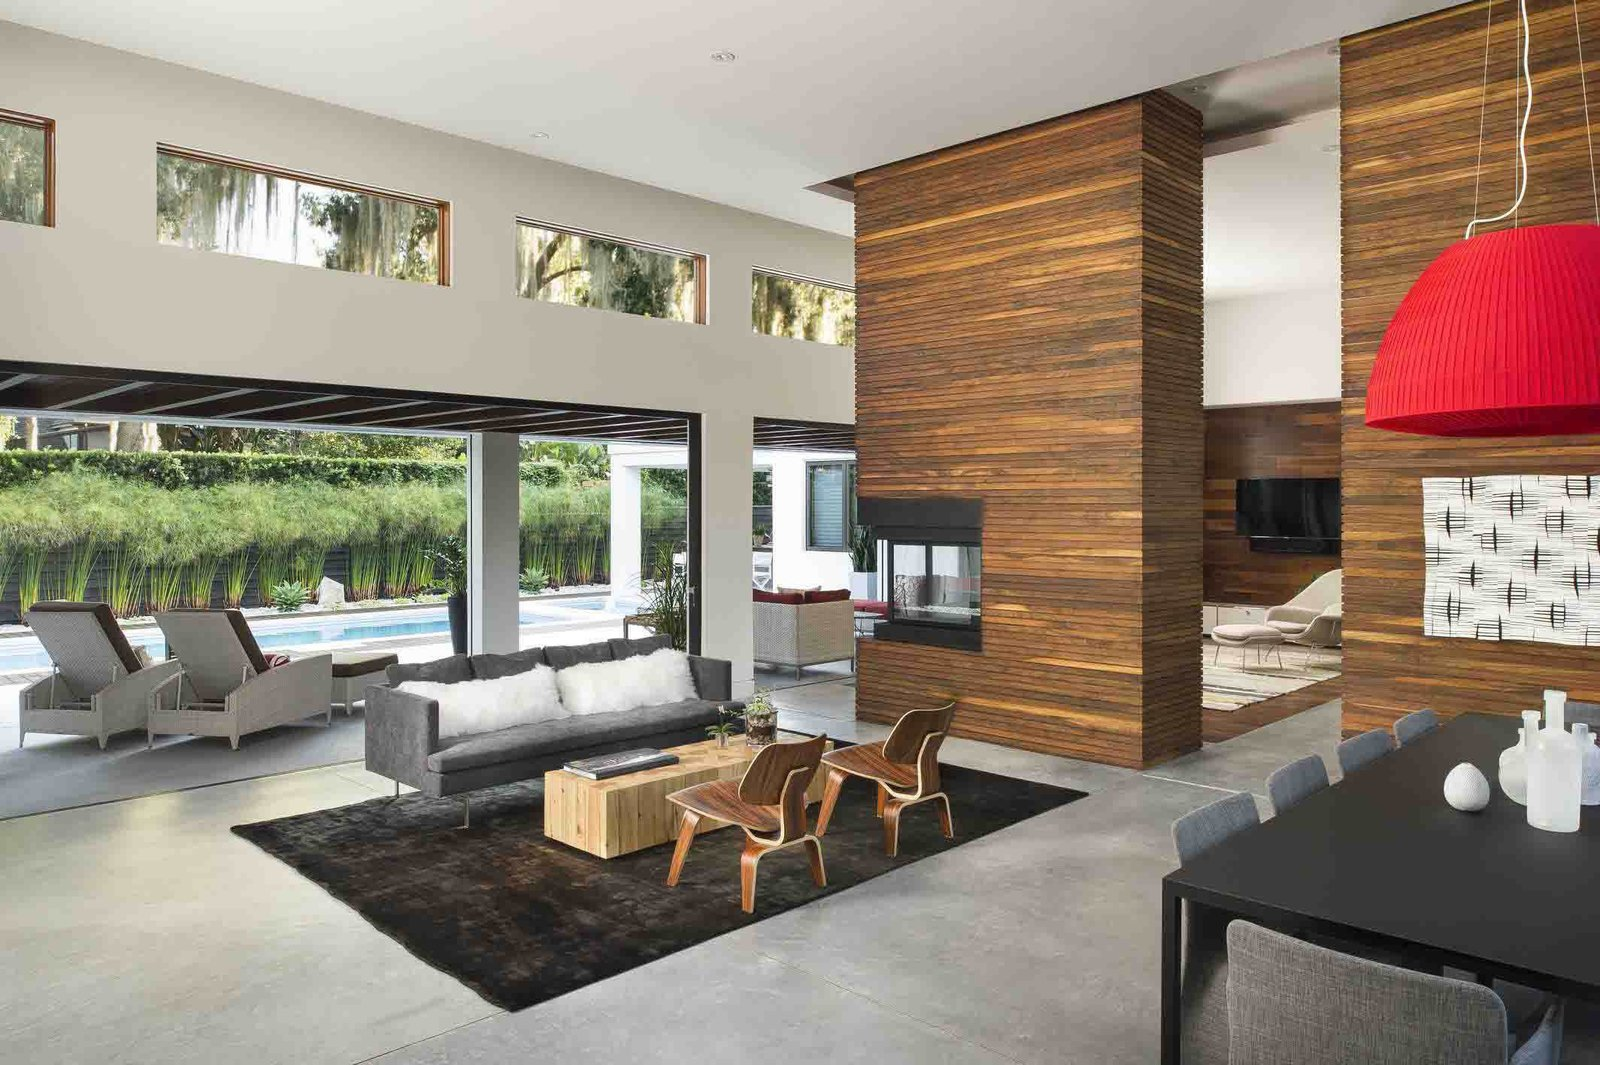 Ipe makes another appearance in the living room, creating a strong indoor-outdoor connection. Kean sited the transom windows to capture views of the moss-covered trees in the backyard.  Photo 3 of 7 in A Modern Home For a Design-Savvy Family in Florida